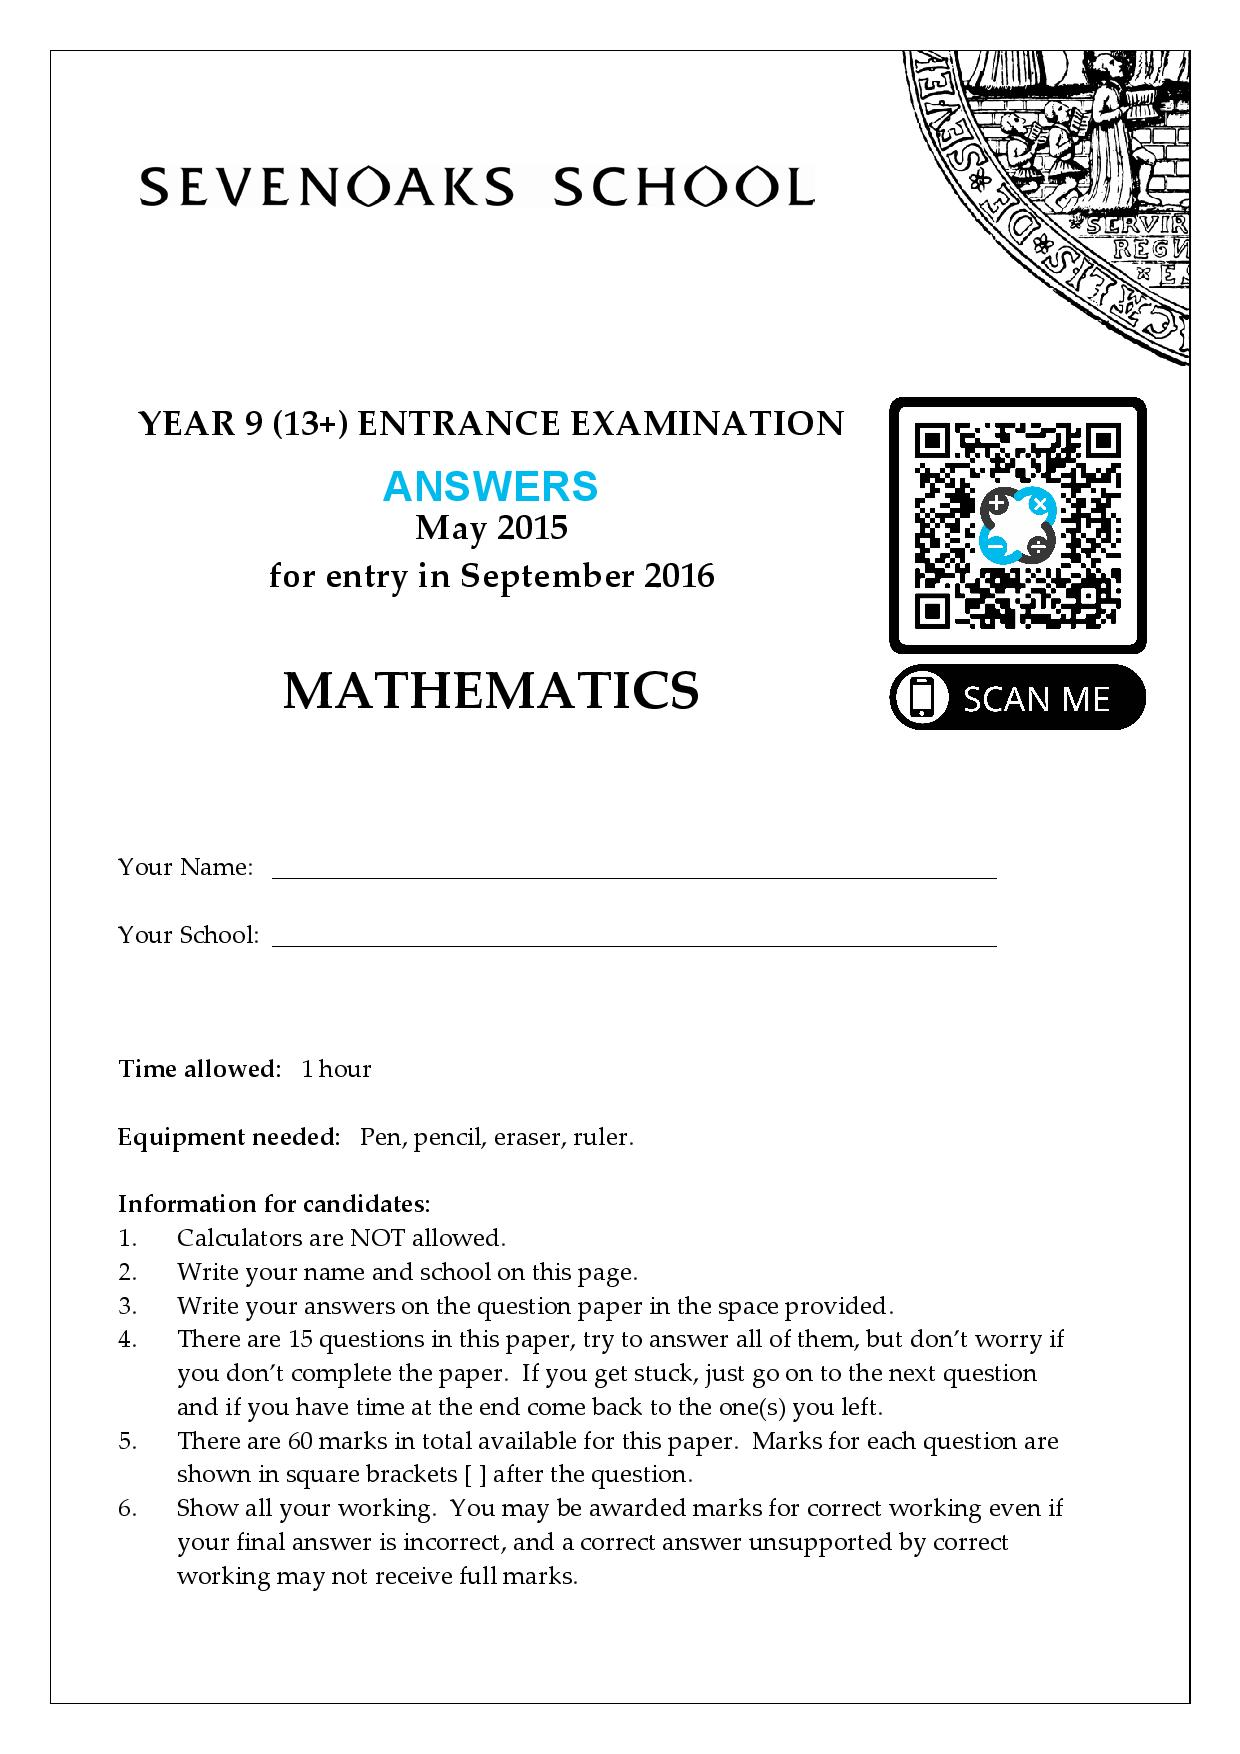 YEAR 9 13 ENTRANCE EXAMINATION 2015 Answer Paper page 001